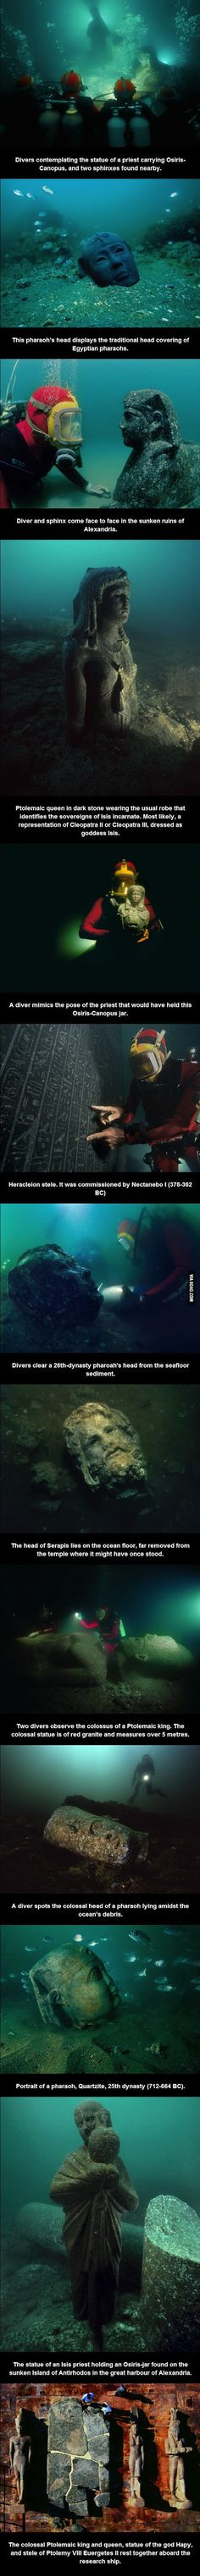 Remains of the sunken ancient cities of Alexandria, Heracleion and Canopus.